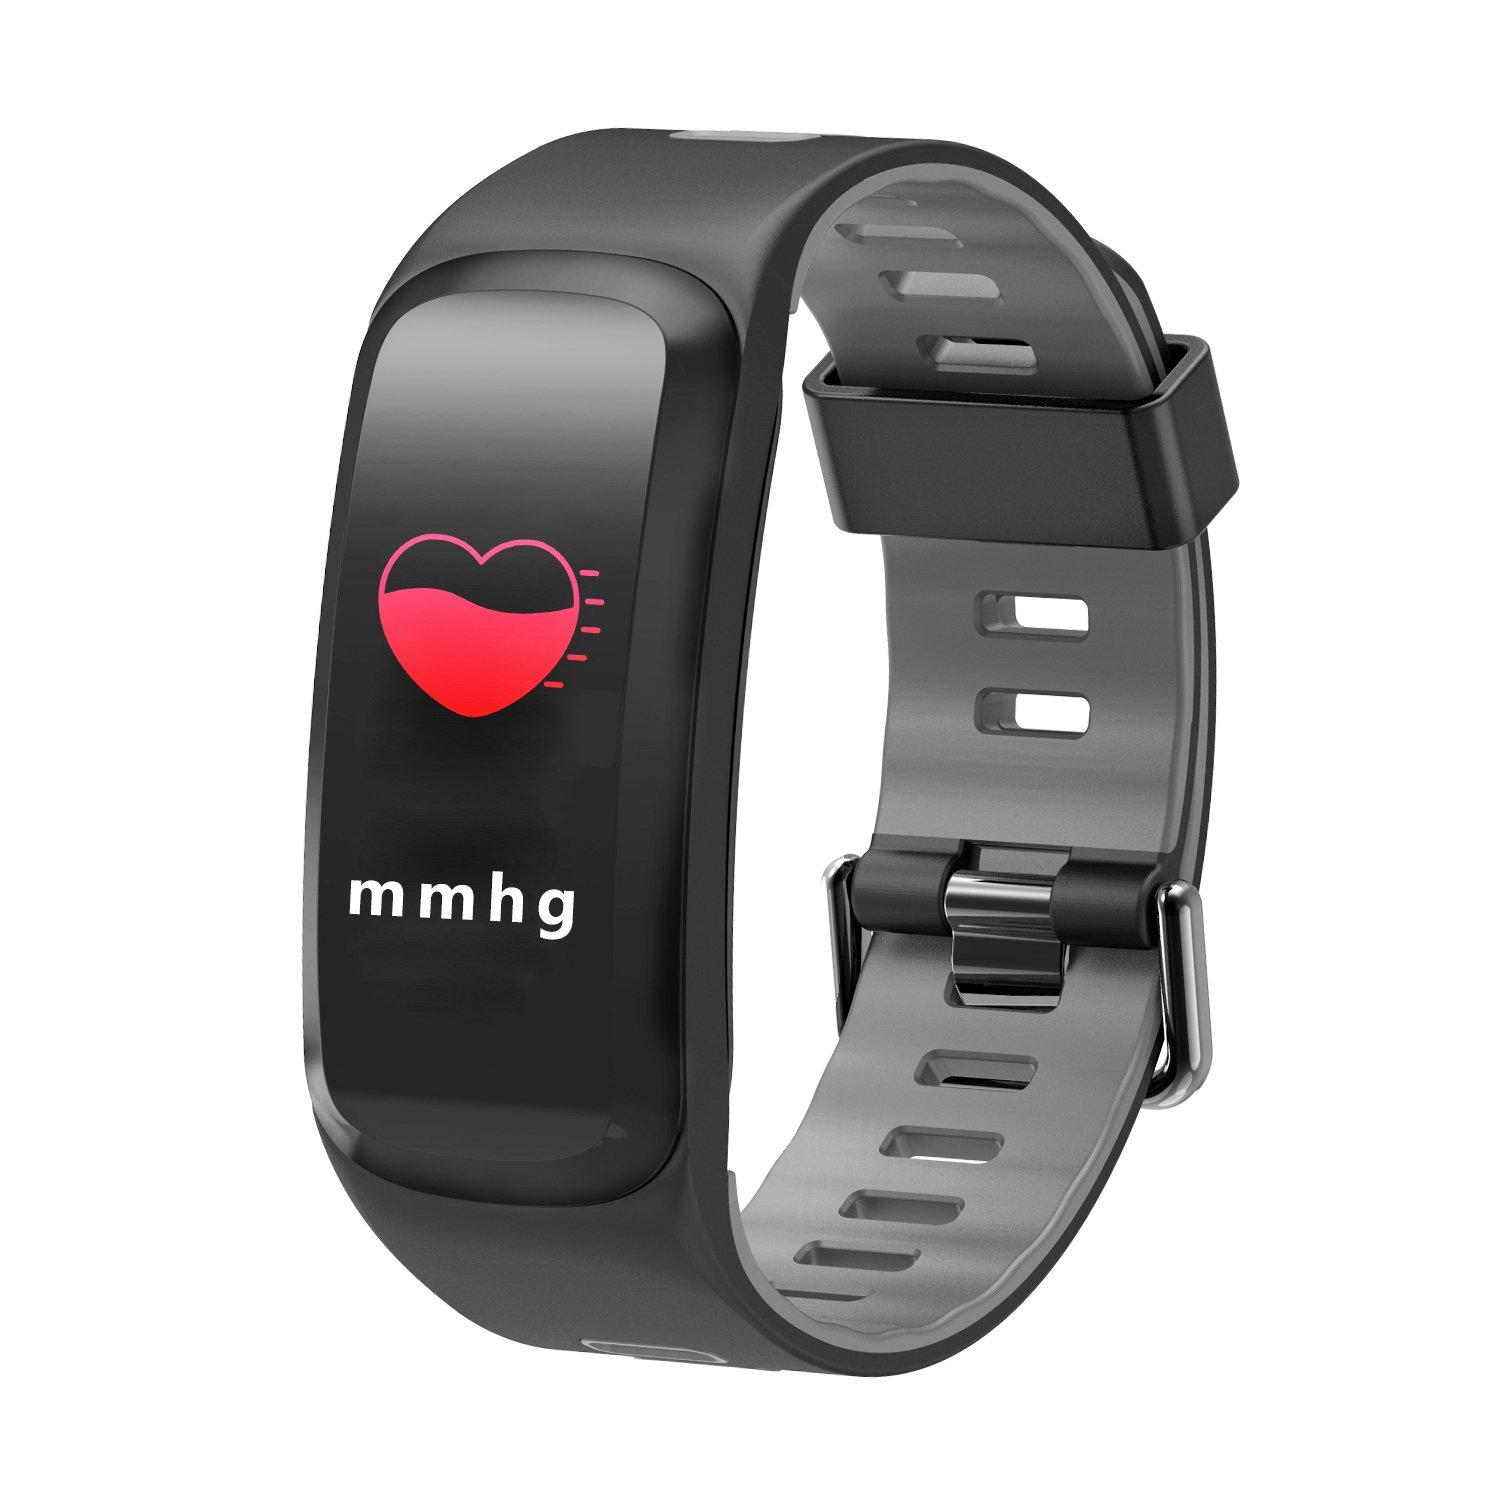 Byoung Smart Wristband for Kids,0.95 inch Touch Screen Pedometer IP68 Waterproof with Calorie Counter Message Notification Fitness Tracker HR with Blood Pressure/Oxygen Camera Remote for Women Men